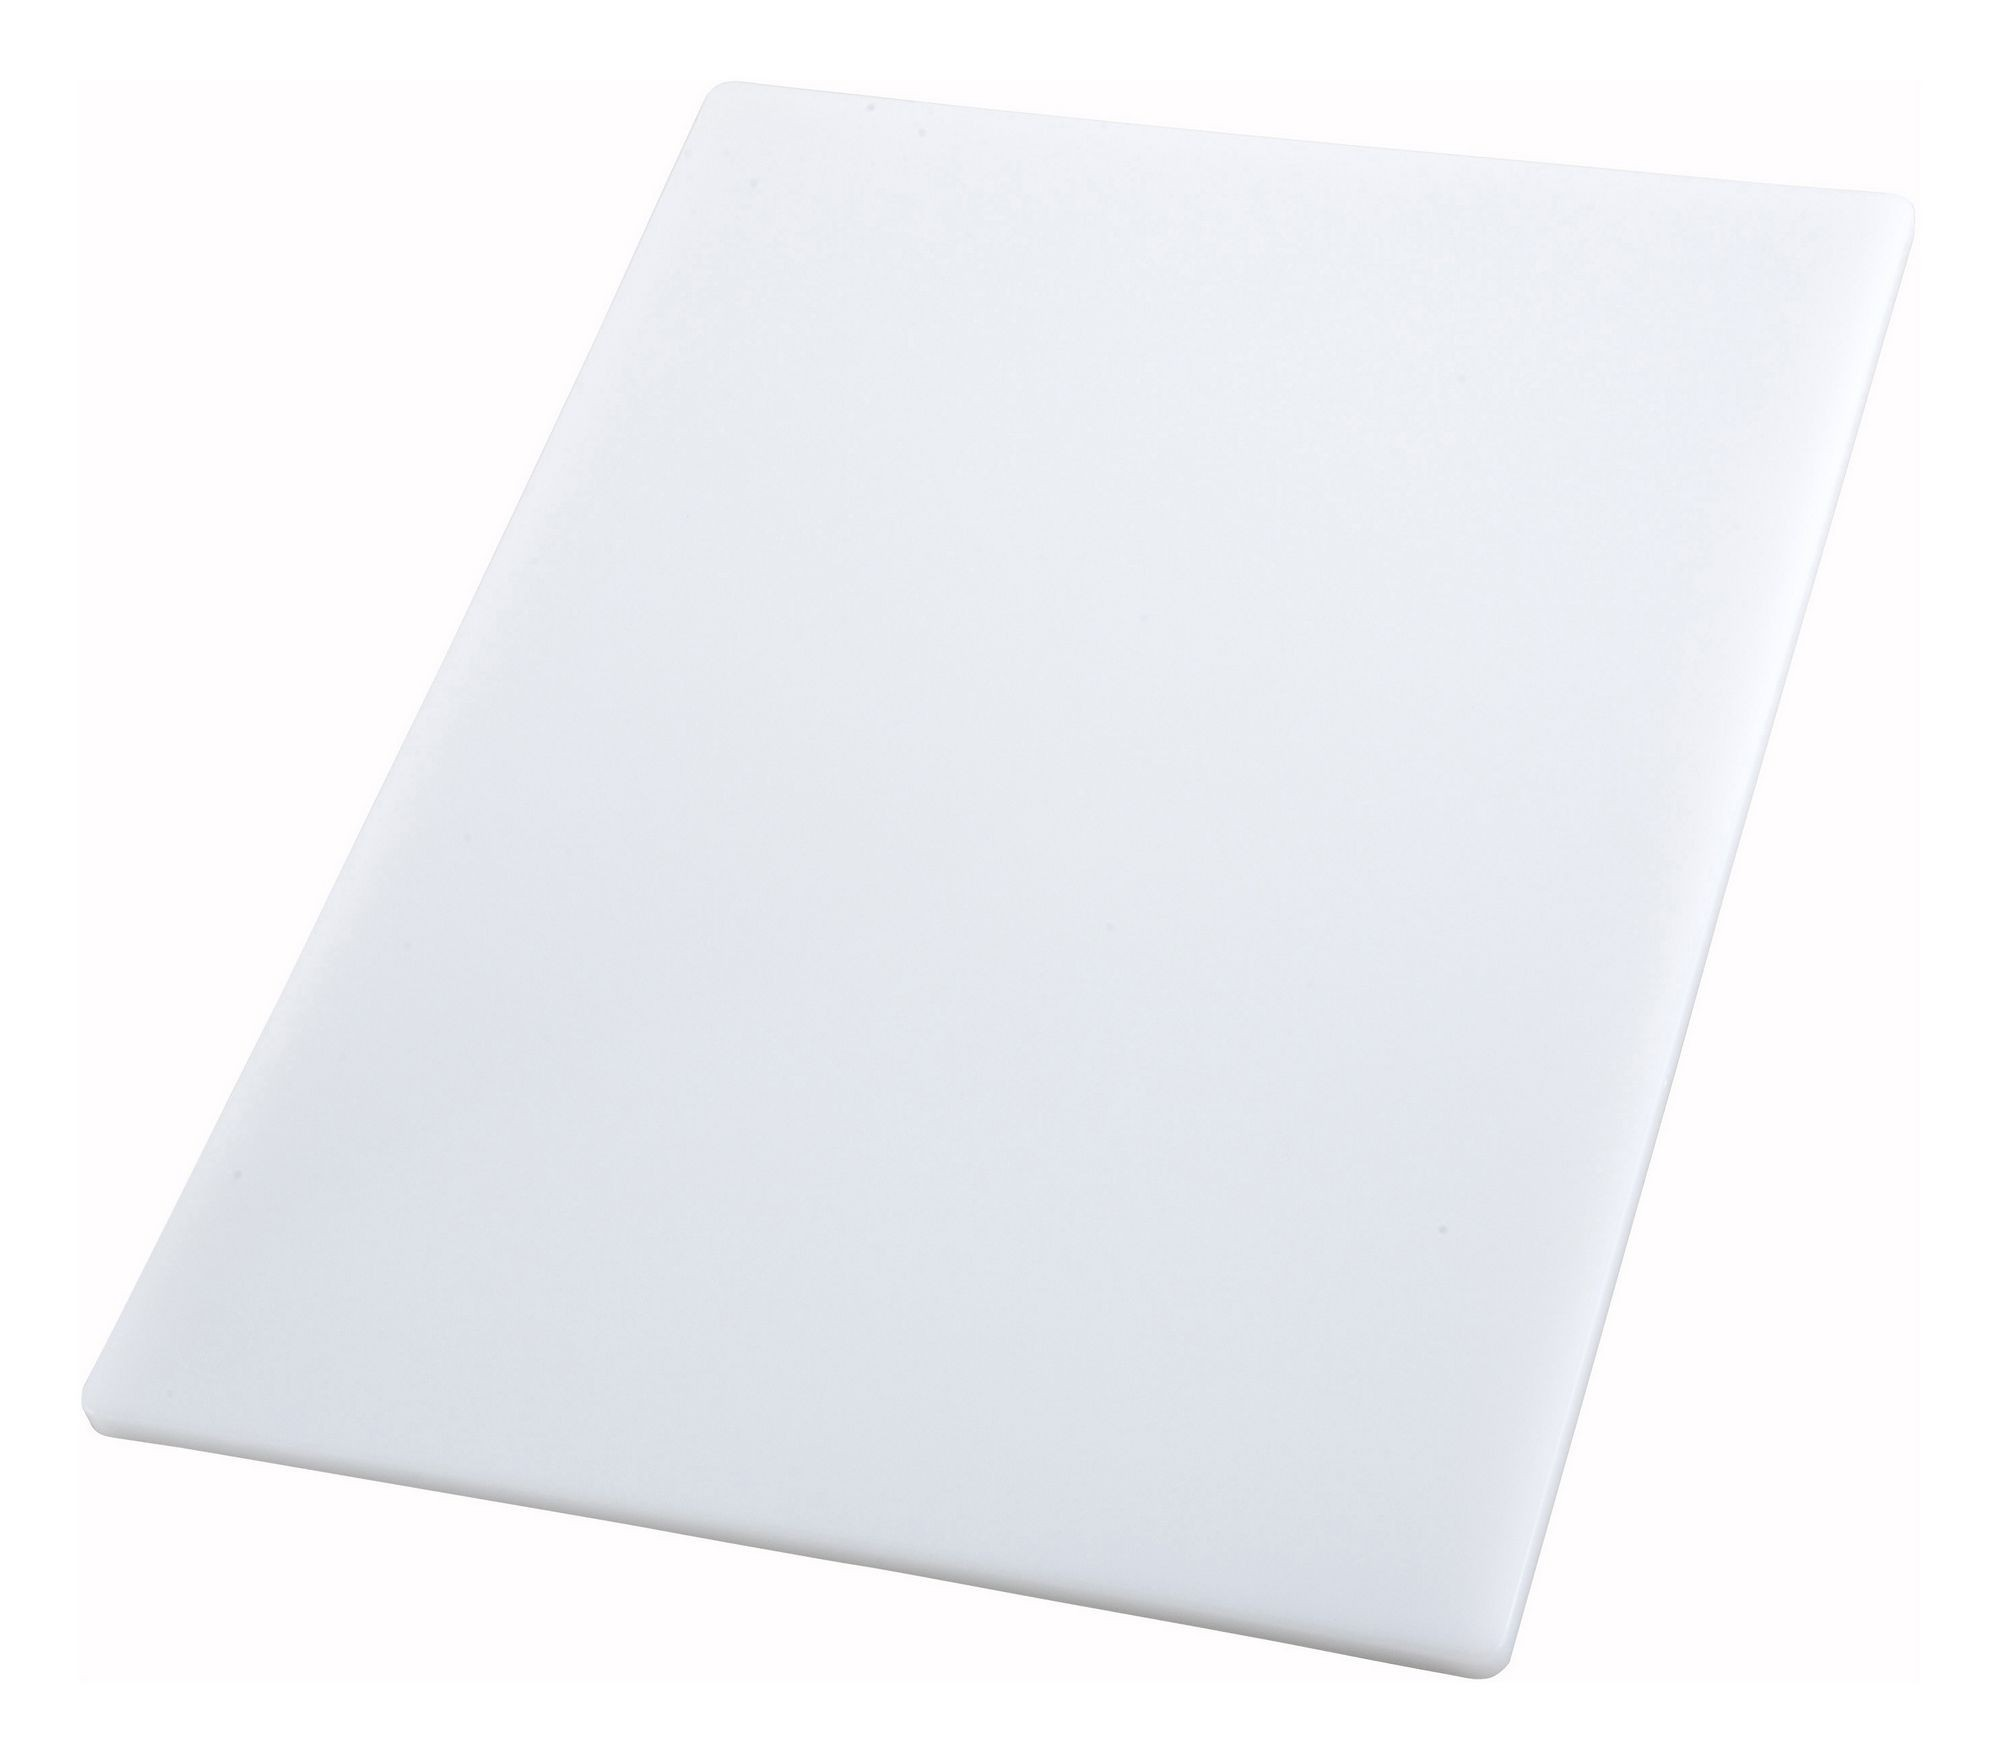 "Winco CBWT-1218 White Cutting Board 12"" x 18"" x 1/2"""